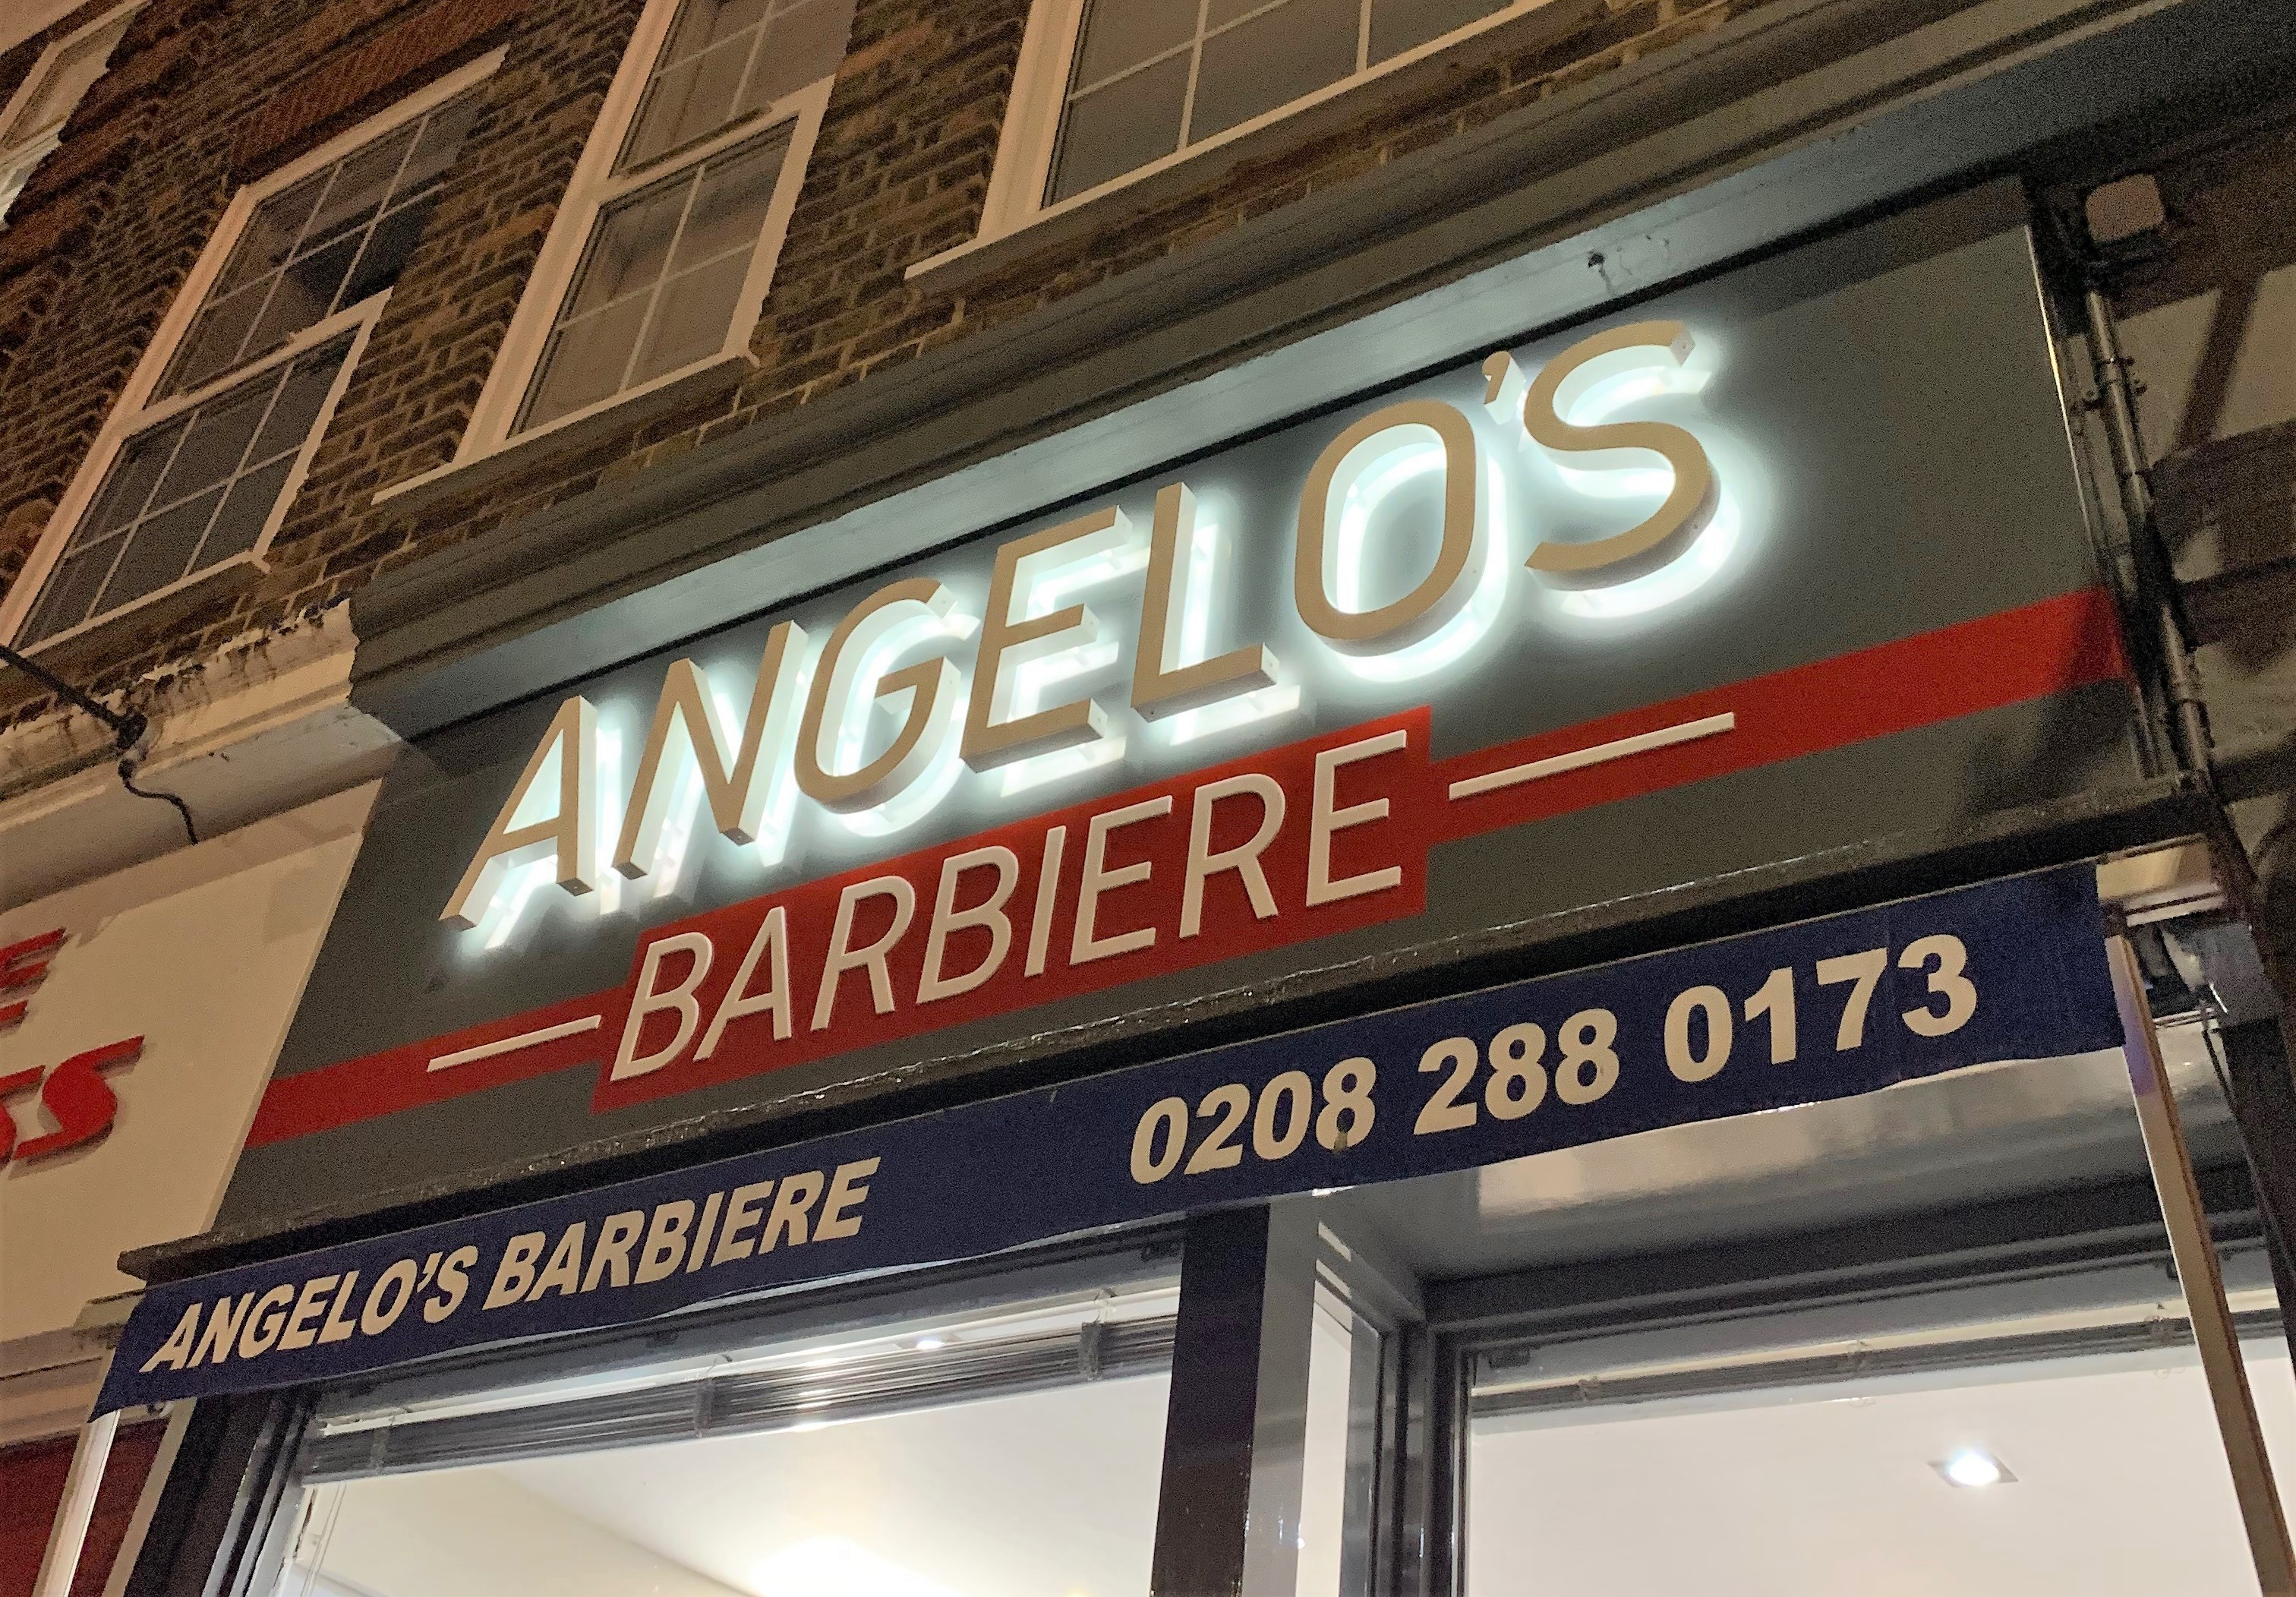 ANGELO'S BARBIERE